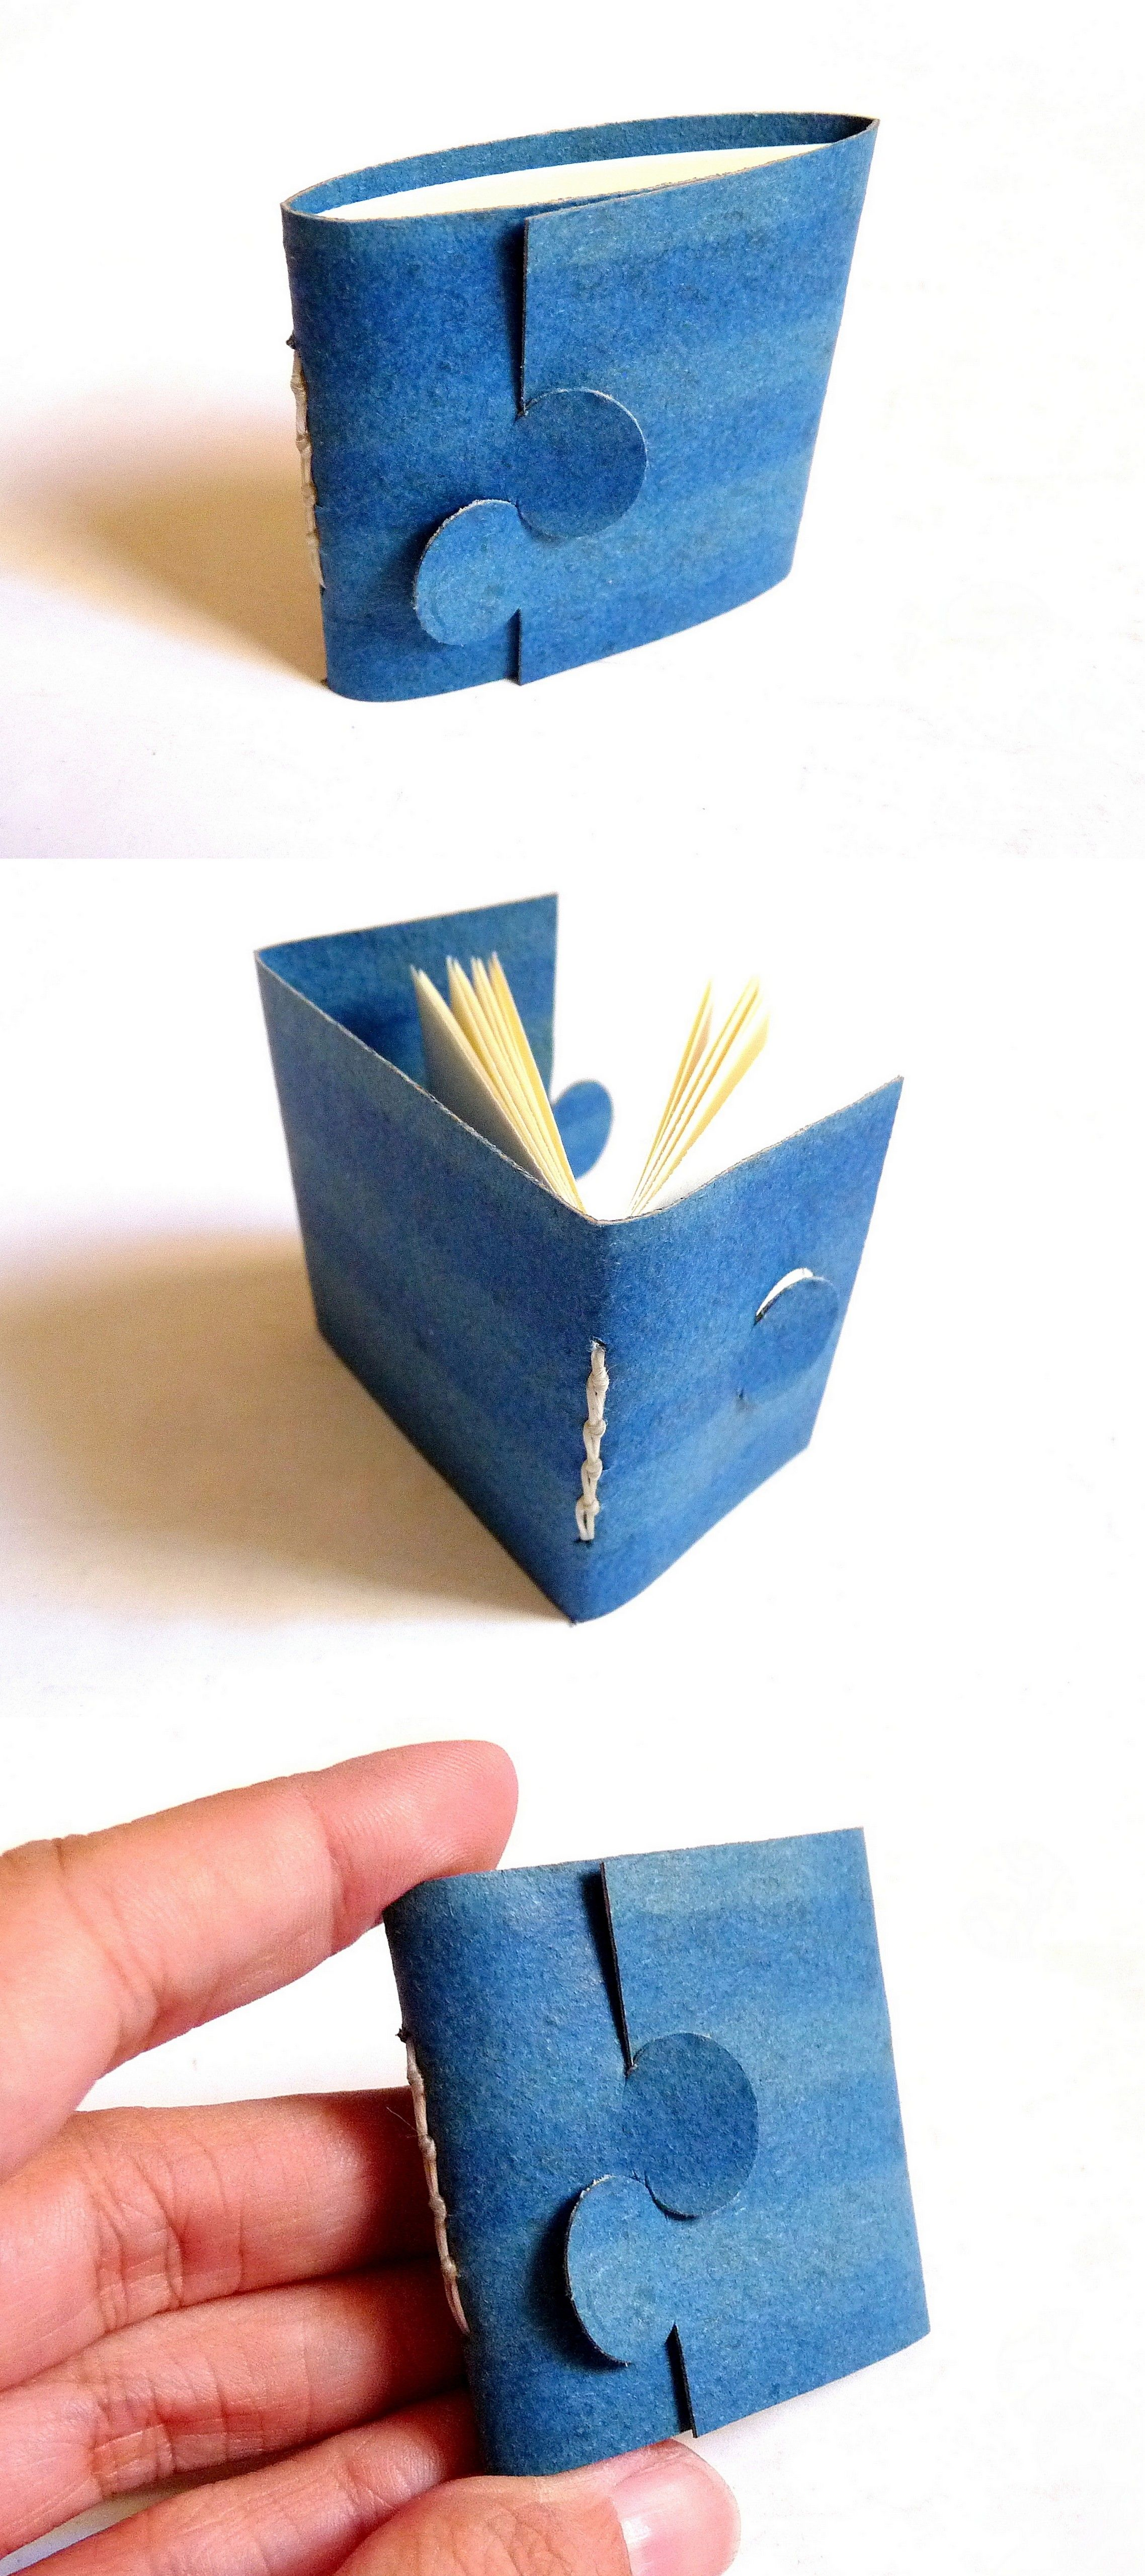 Notitieboekje Maken Pin By Kim Gomes On Diy Other Pinterest Boekbinden Papier And